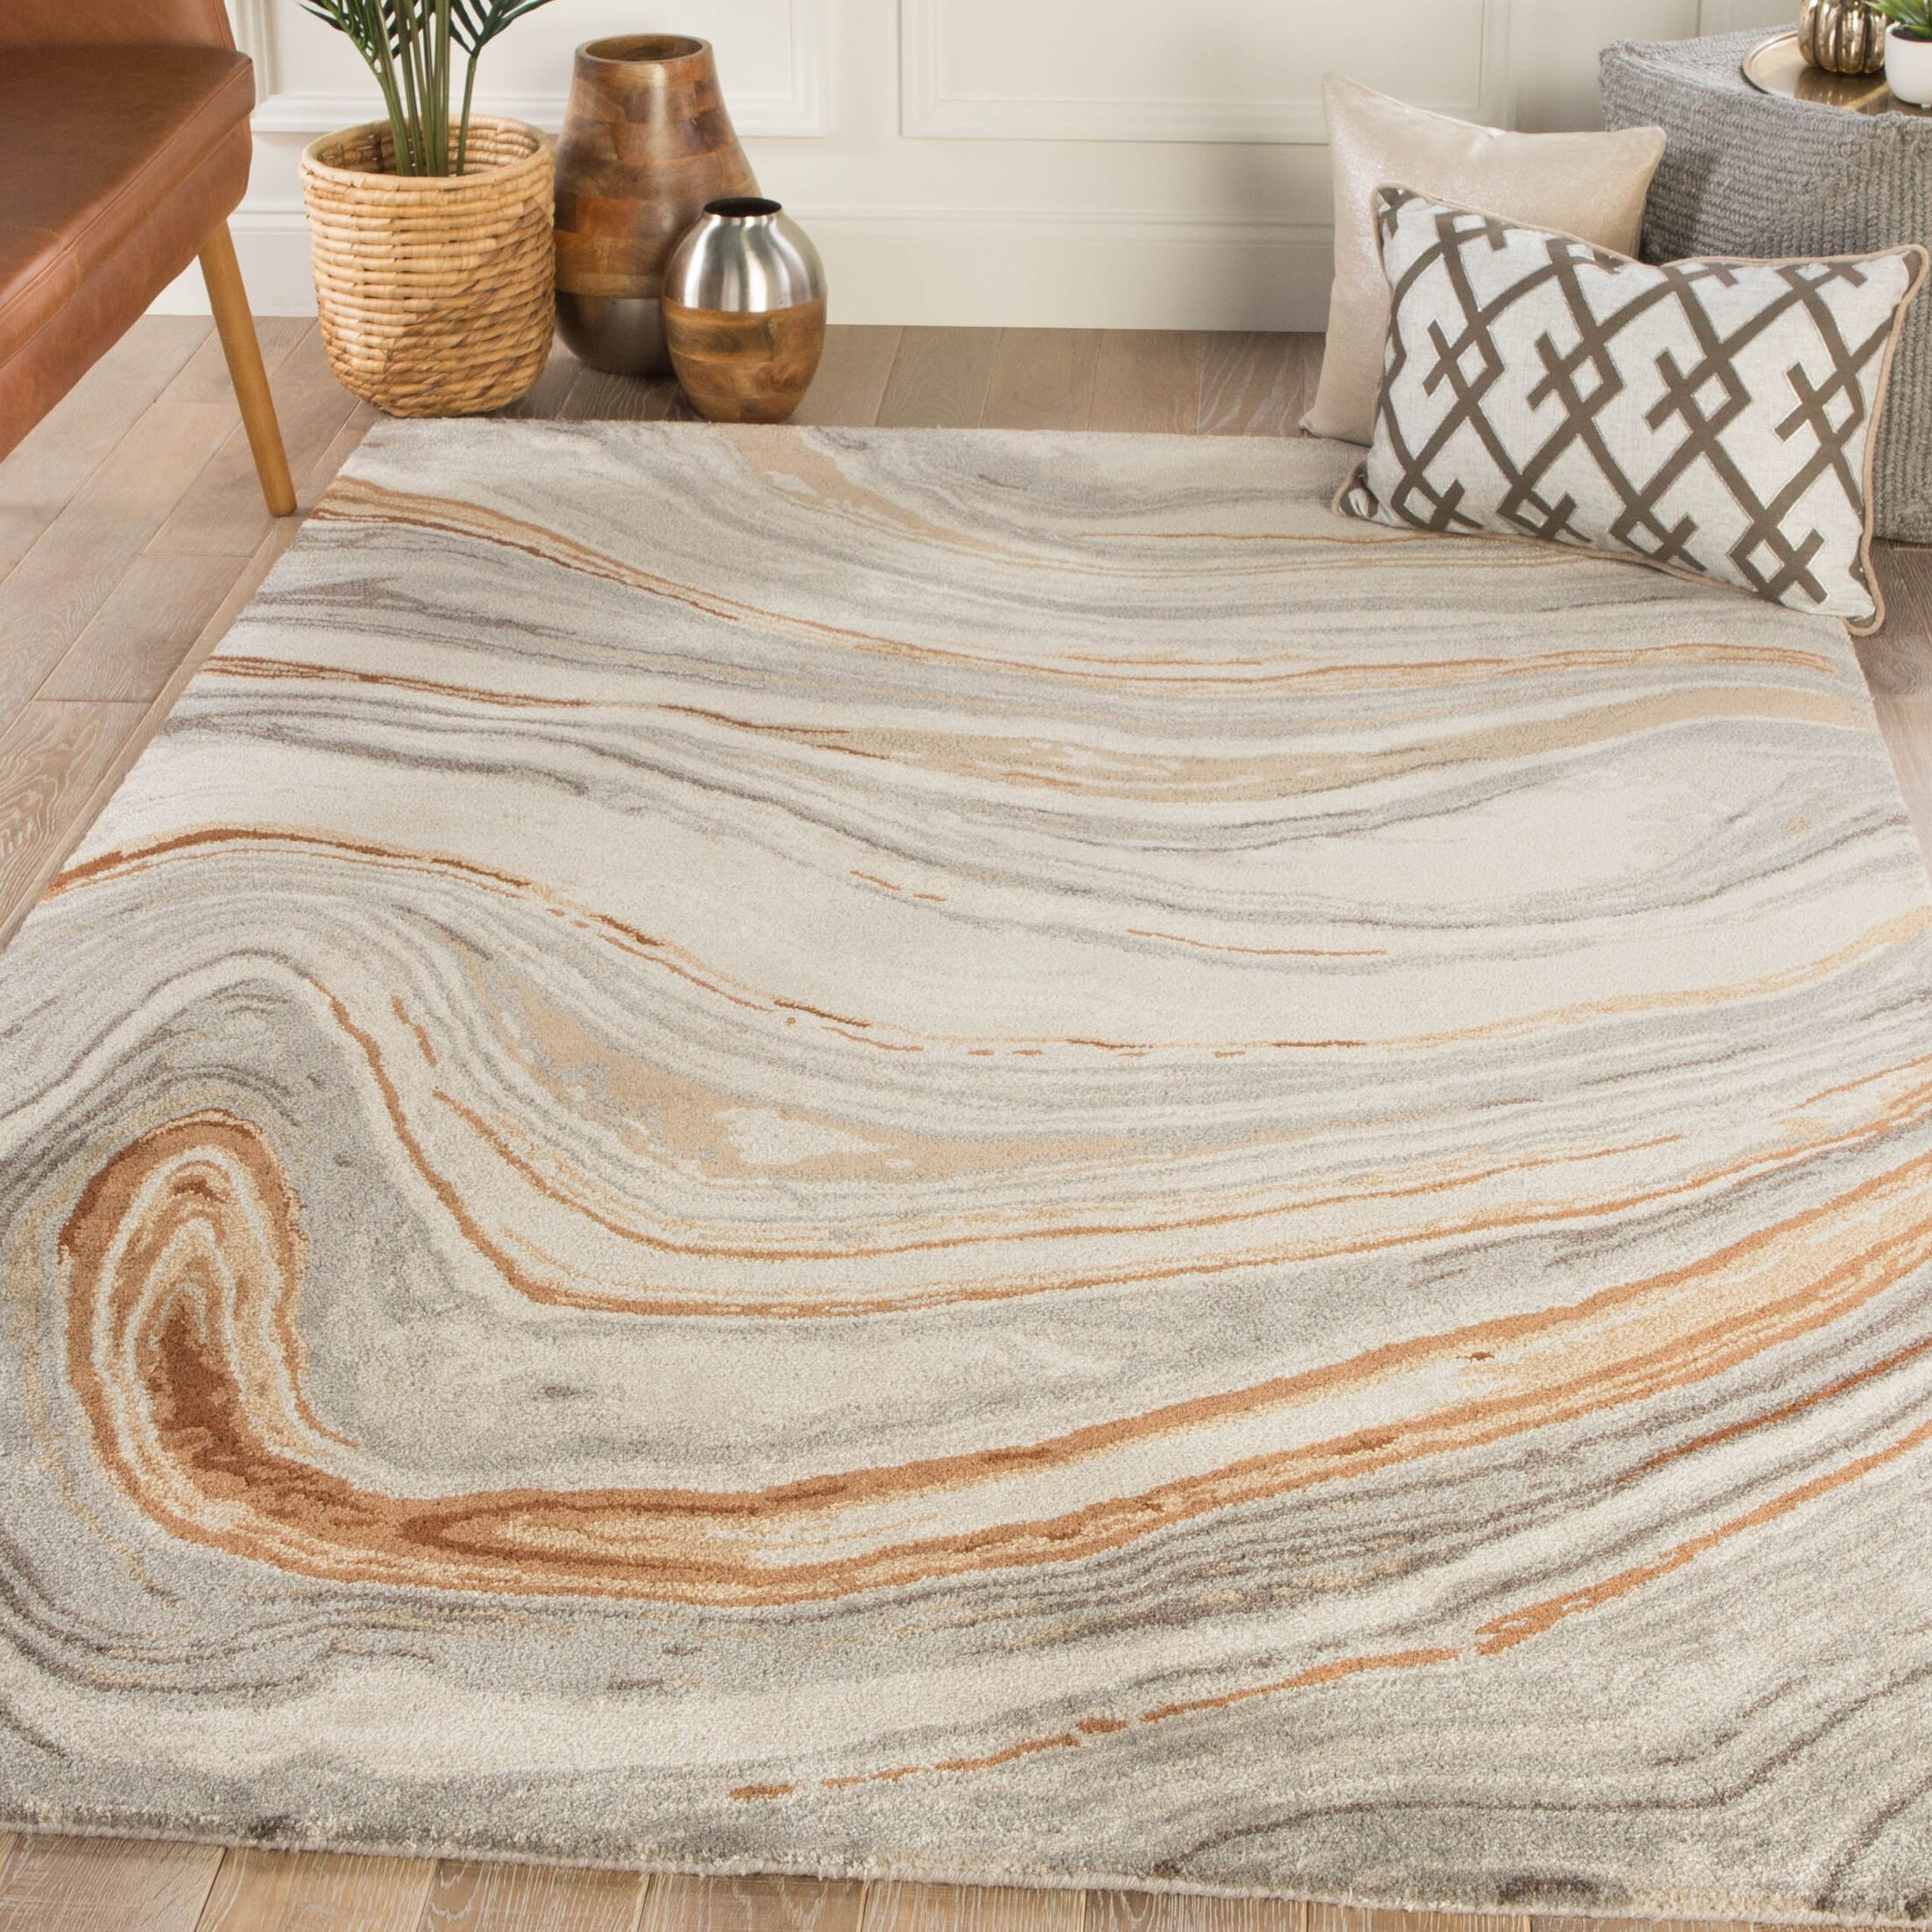 Fairmont Abstract Hand-Tufted Copper/Gray Area Rug Rug Size: Rectangle 9' x 13'